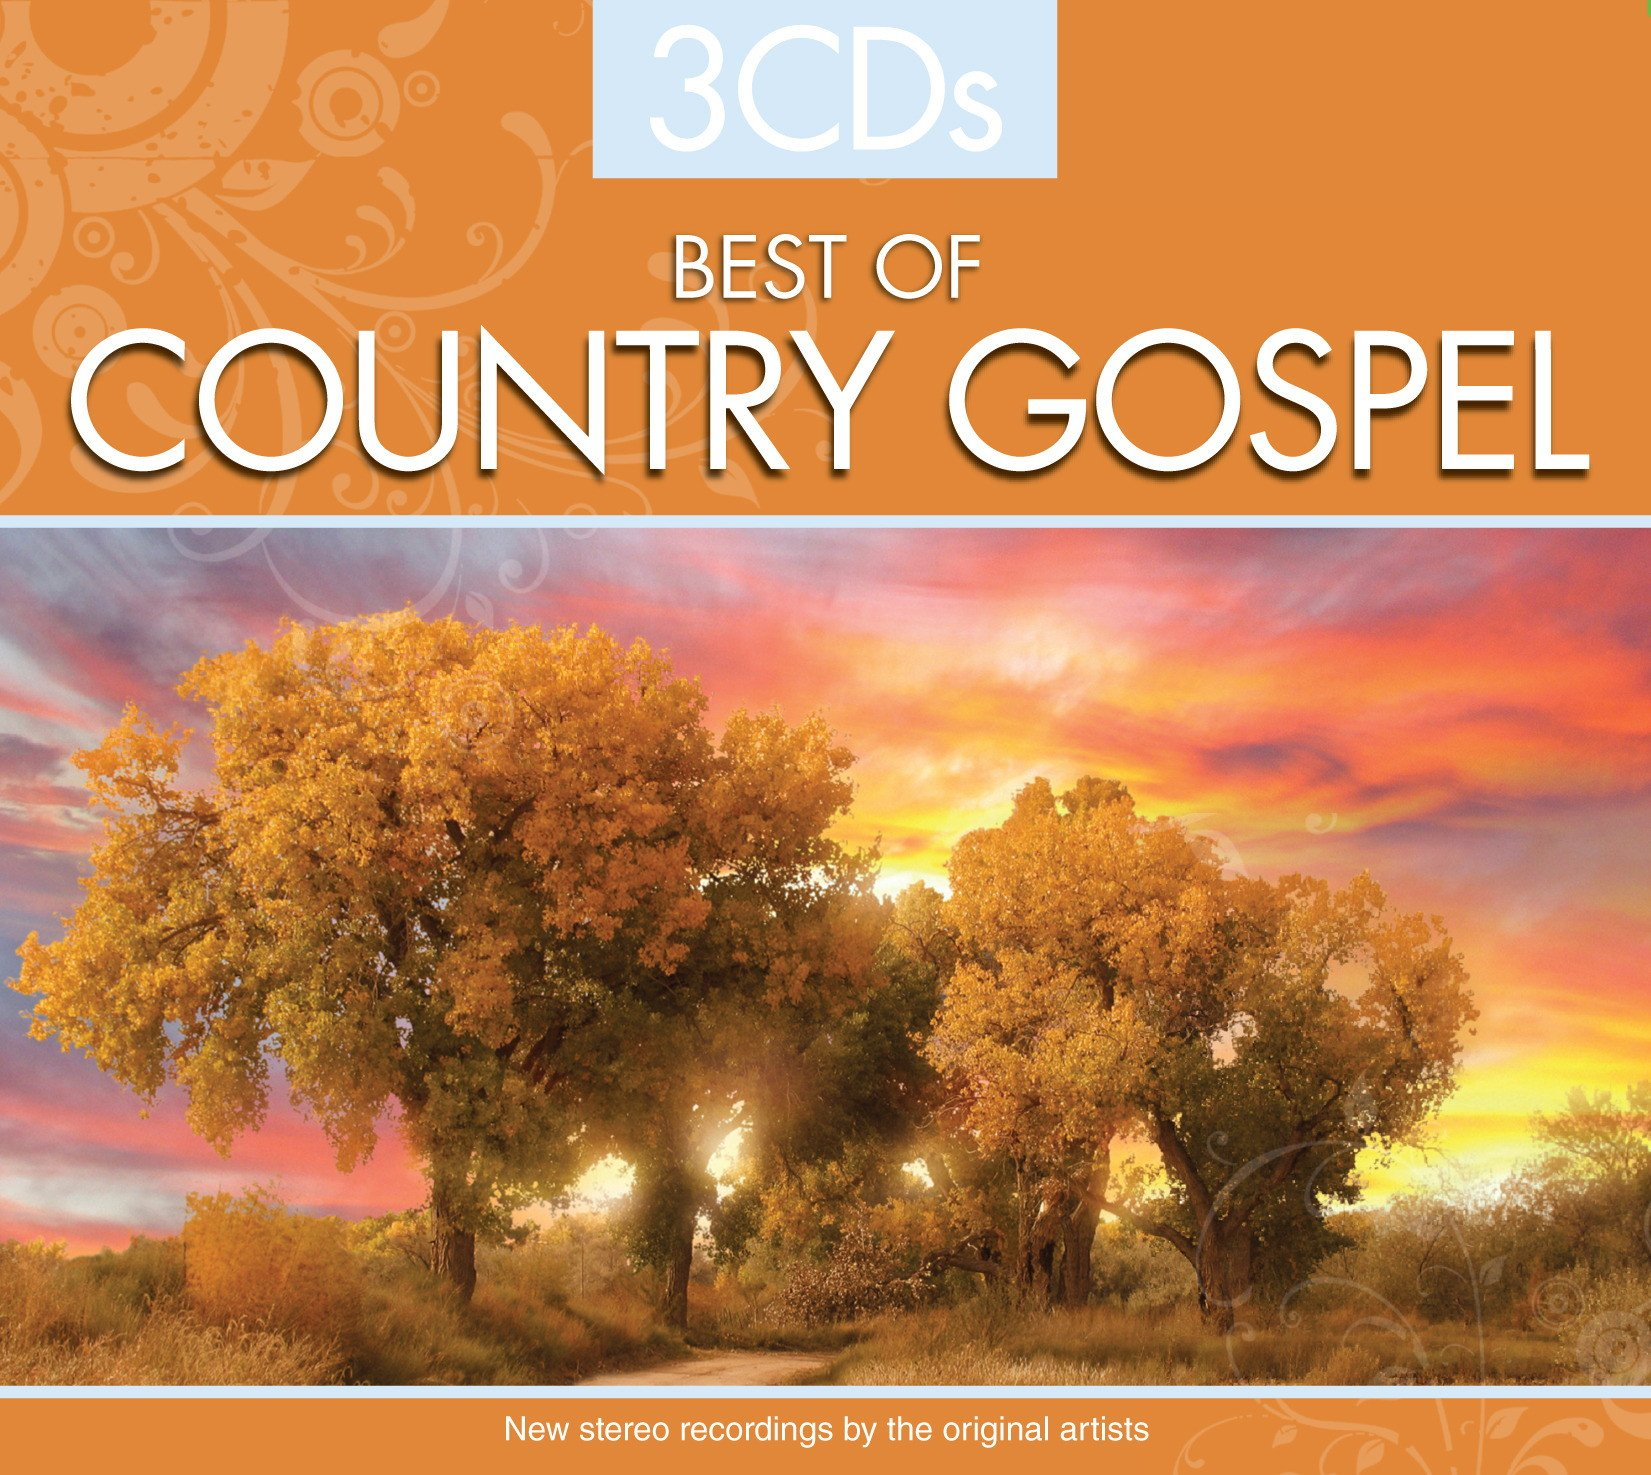 Best of Country Gospel by Capitol Christian Distribution